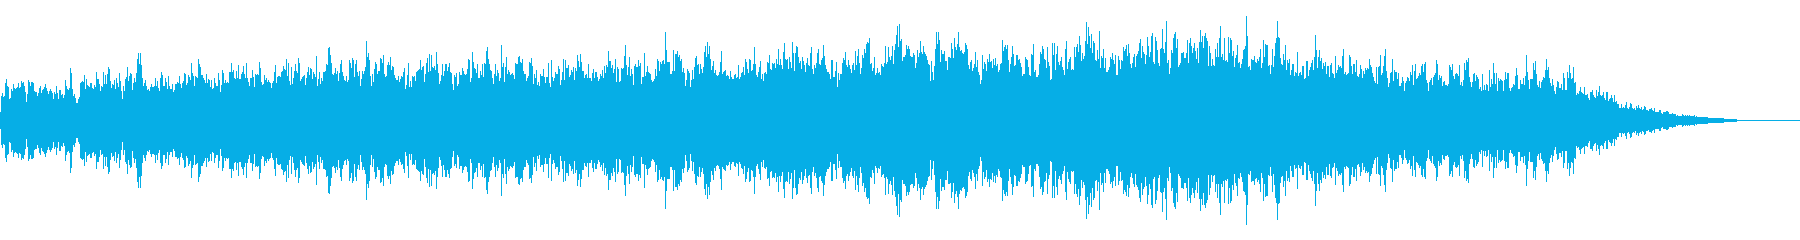 Noise-based sound source 14 that is likely to appear in horror films's reproduced waveform